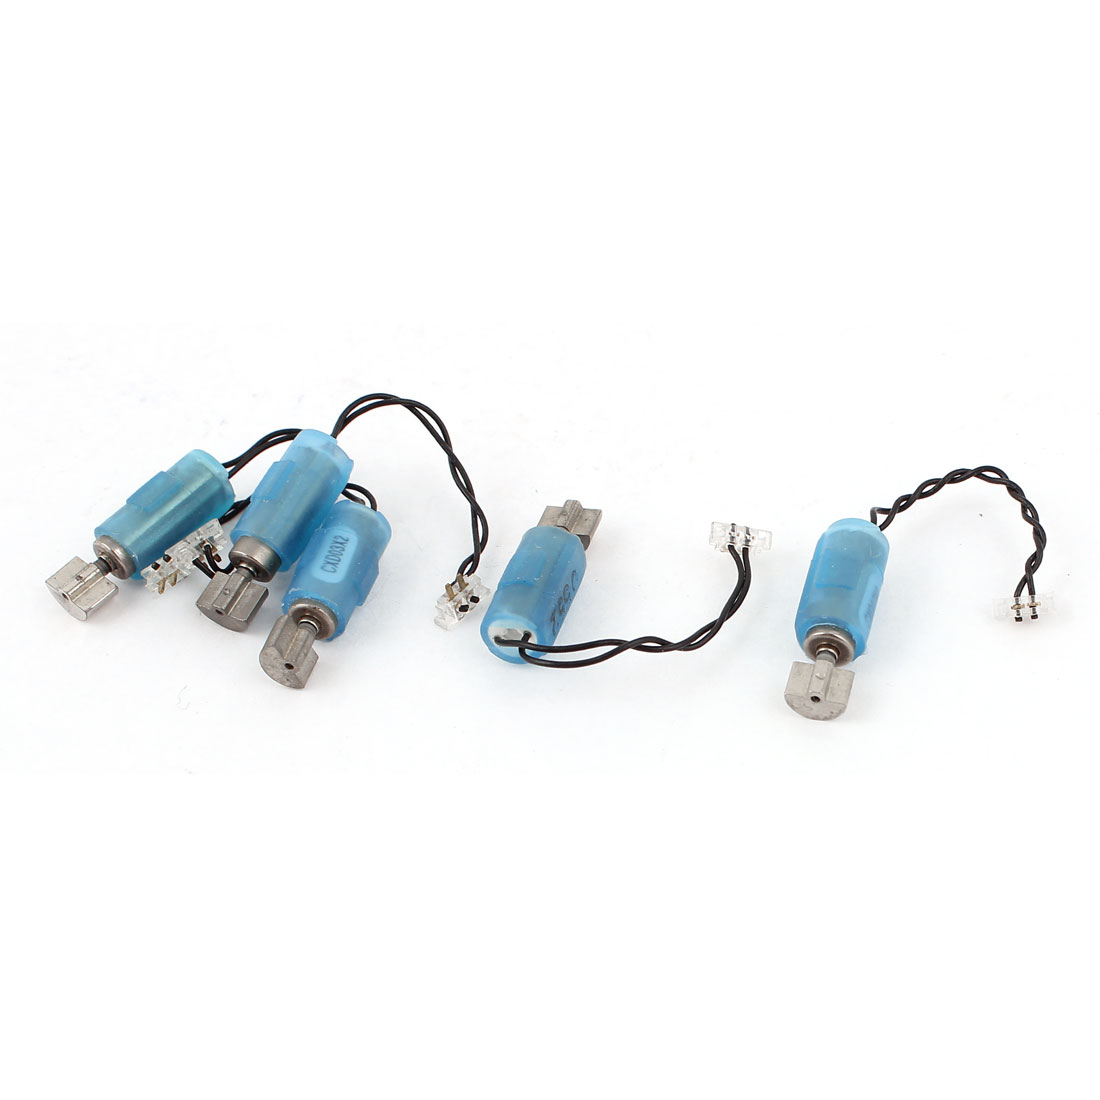 5Pcs DC 3V 1500RPM 4mm Dia 2 Wire Lead Coreless Vibrating Motor